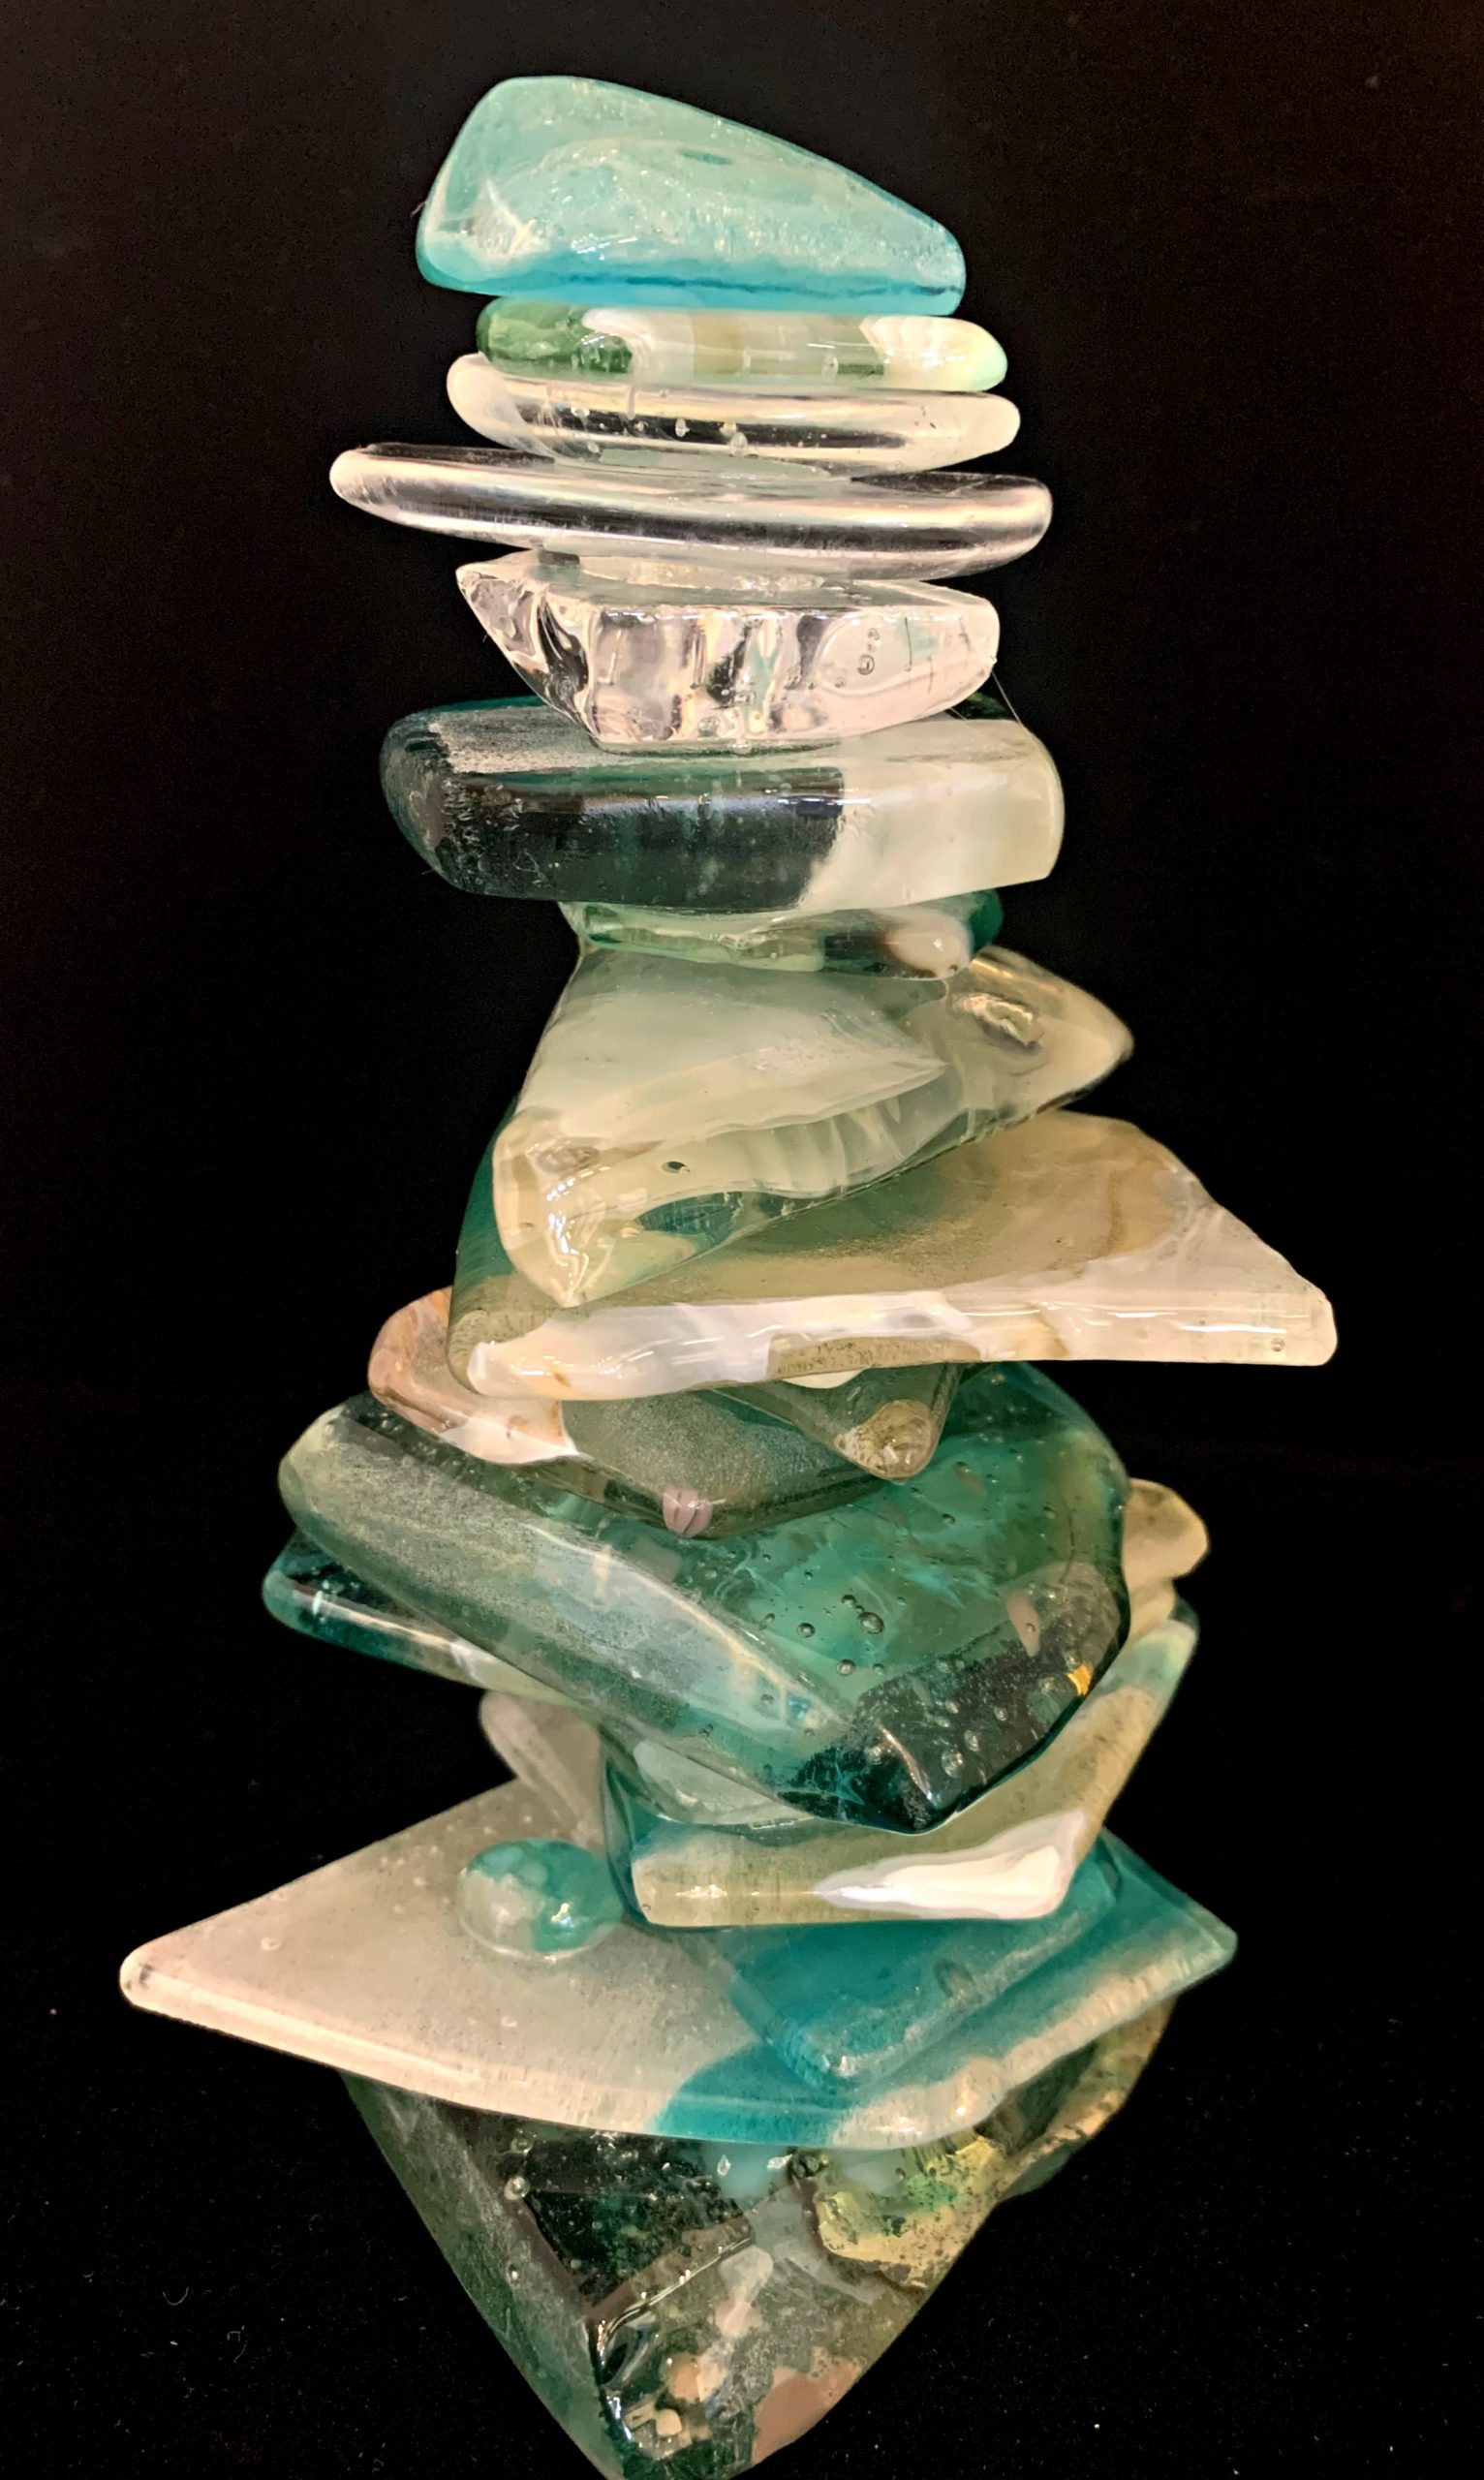 Cast Glass Cairn Sculpture #58 by Heather Cuell | Effusion Art Gallery + Cast Glass Studio, Invermere BC